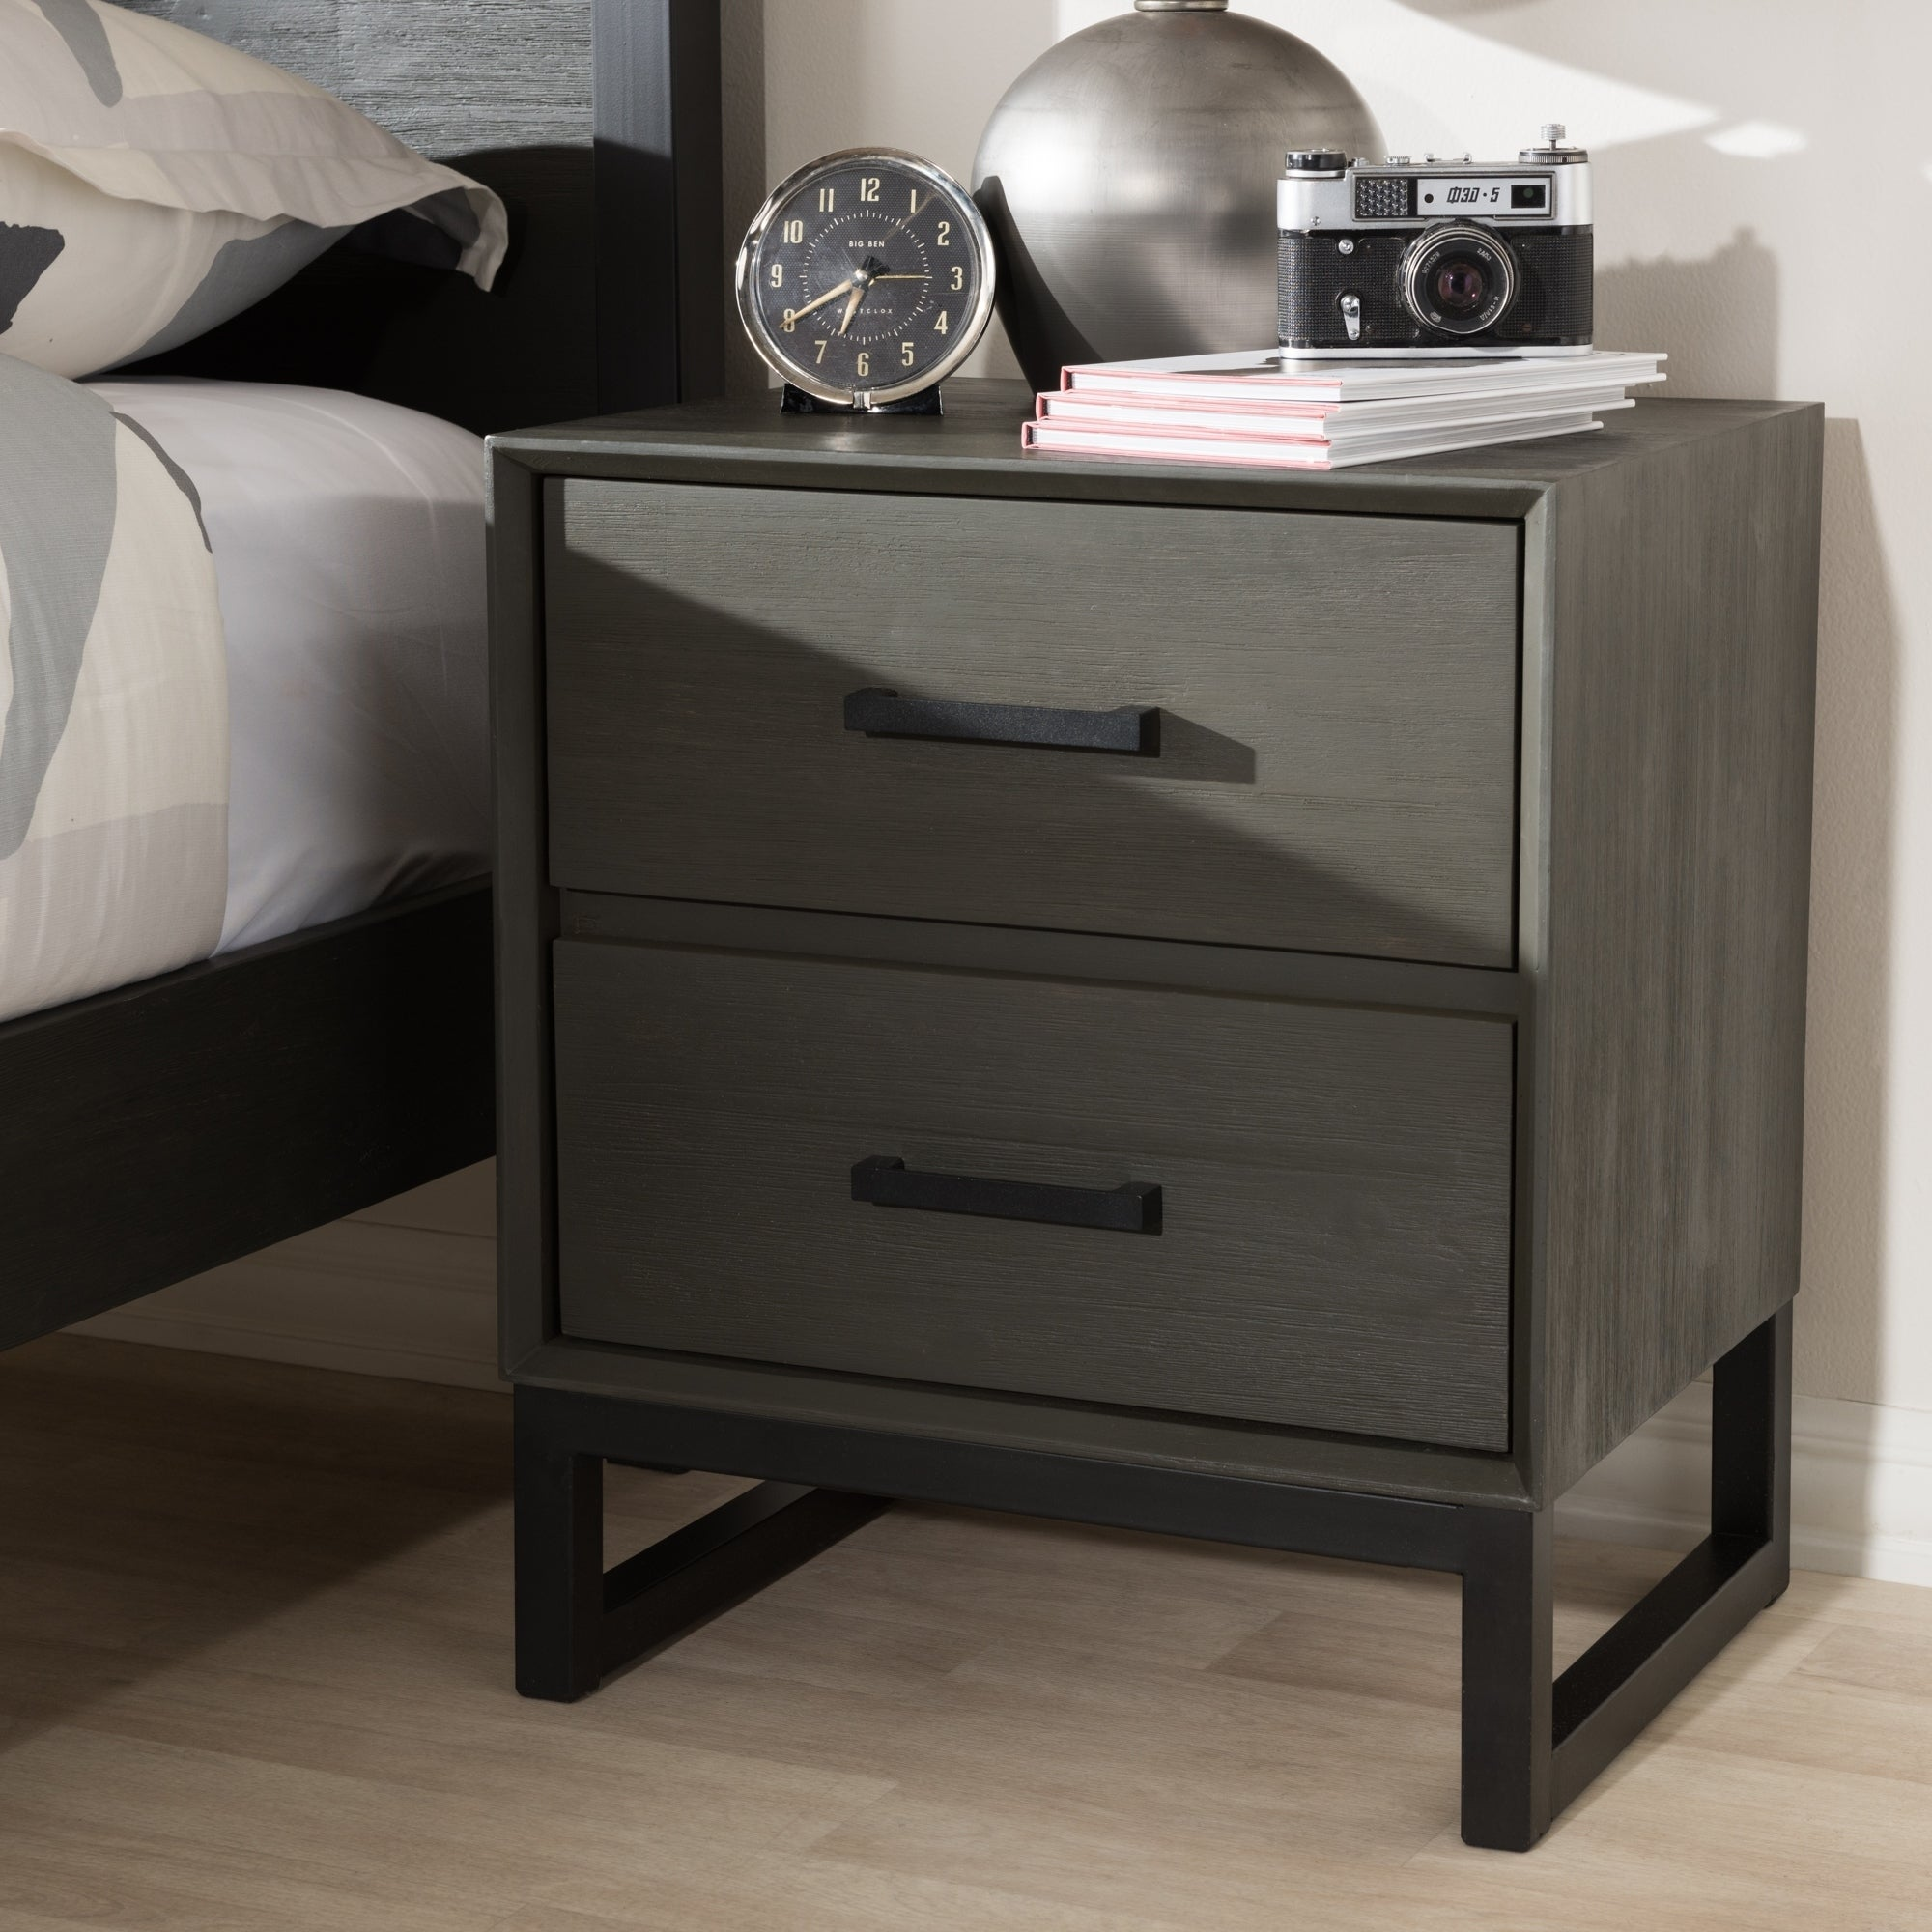 Shop Rustic Grey Wood And Black Metal 2 Drawer Nightstand By